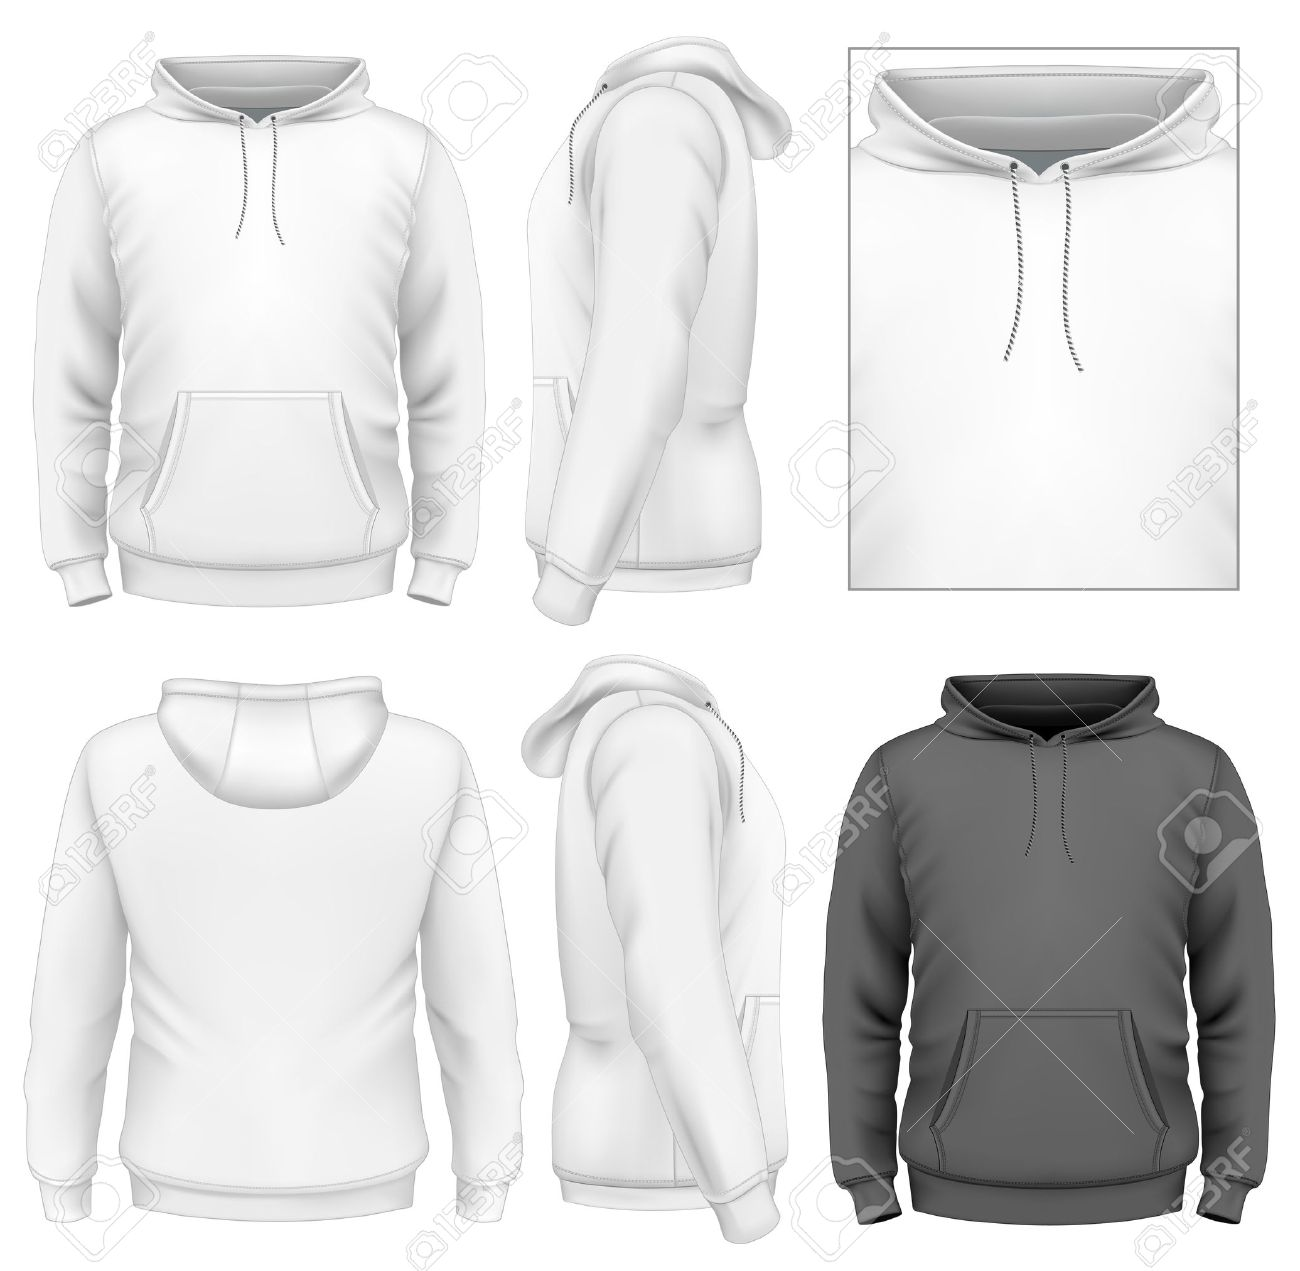 Men\'s Hoodie Design Template (front View, Back And Side Views ...